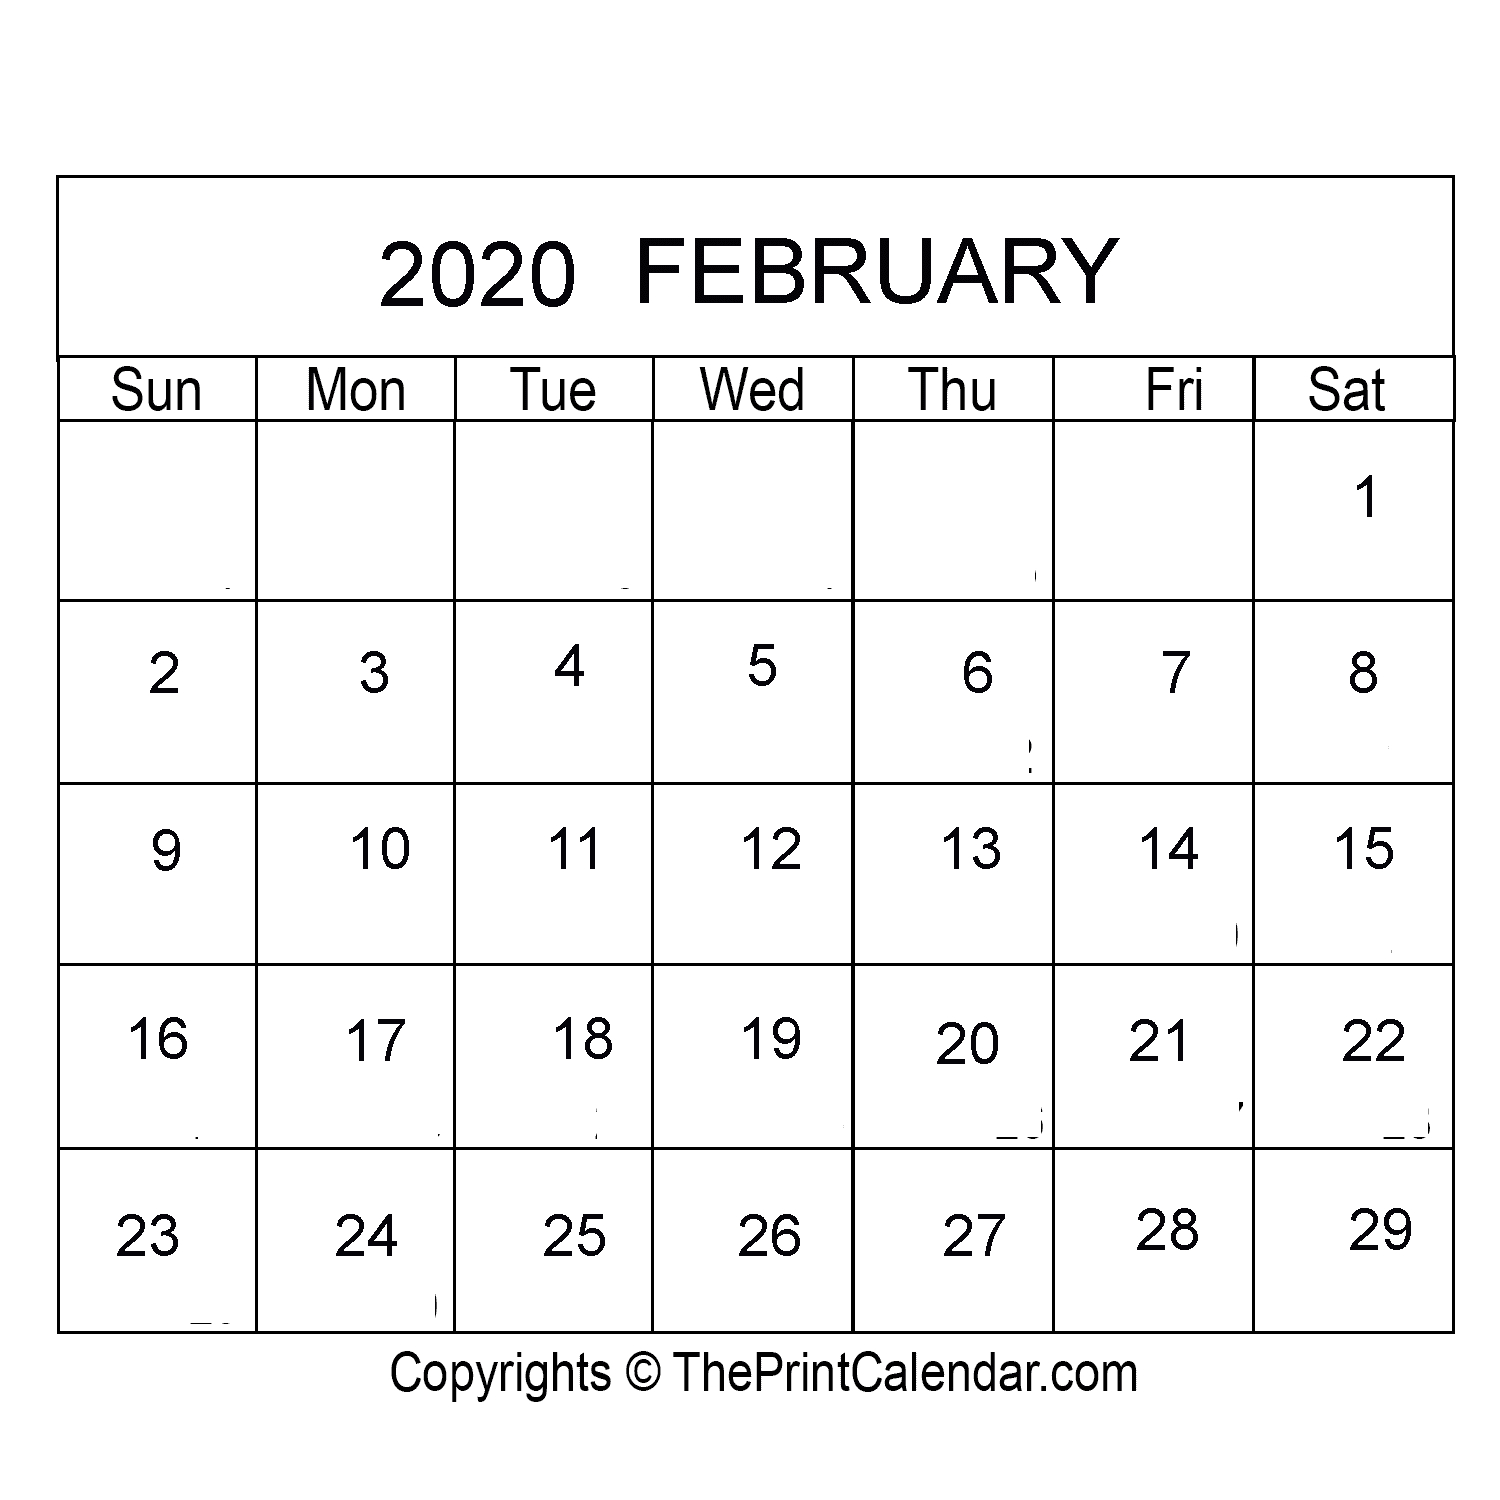 These Are Online Calendar Templates Which Are Editable And Calendar That You Can Edit